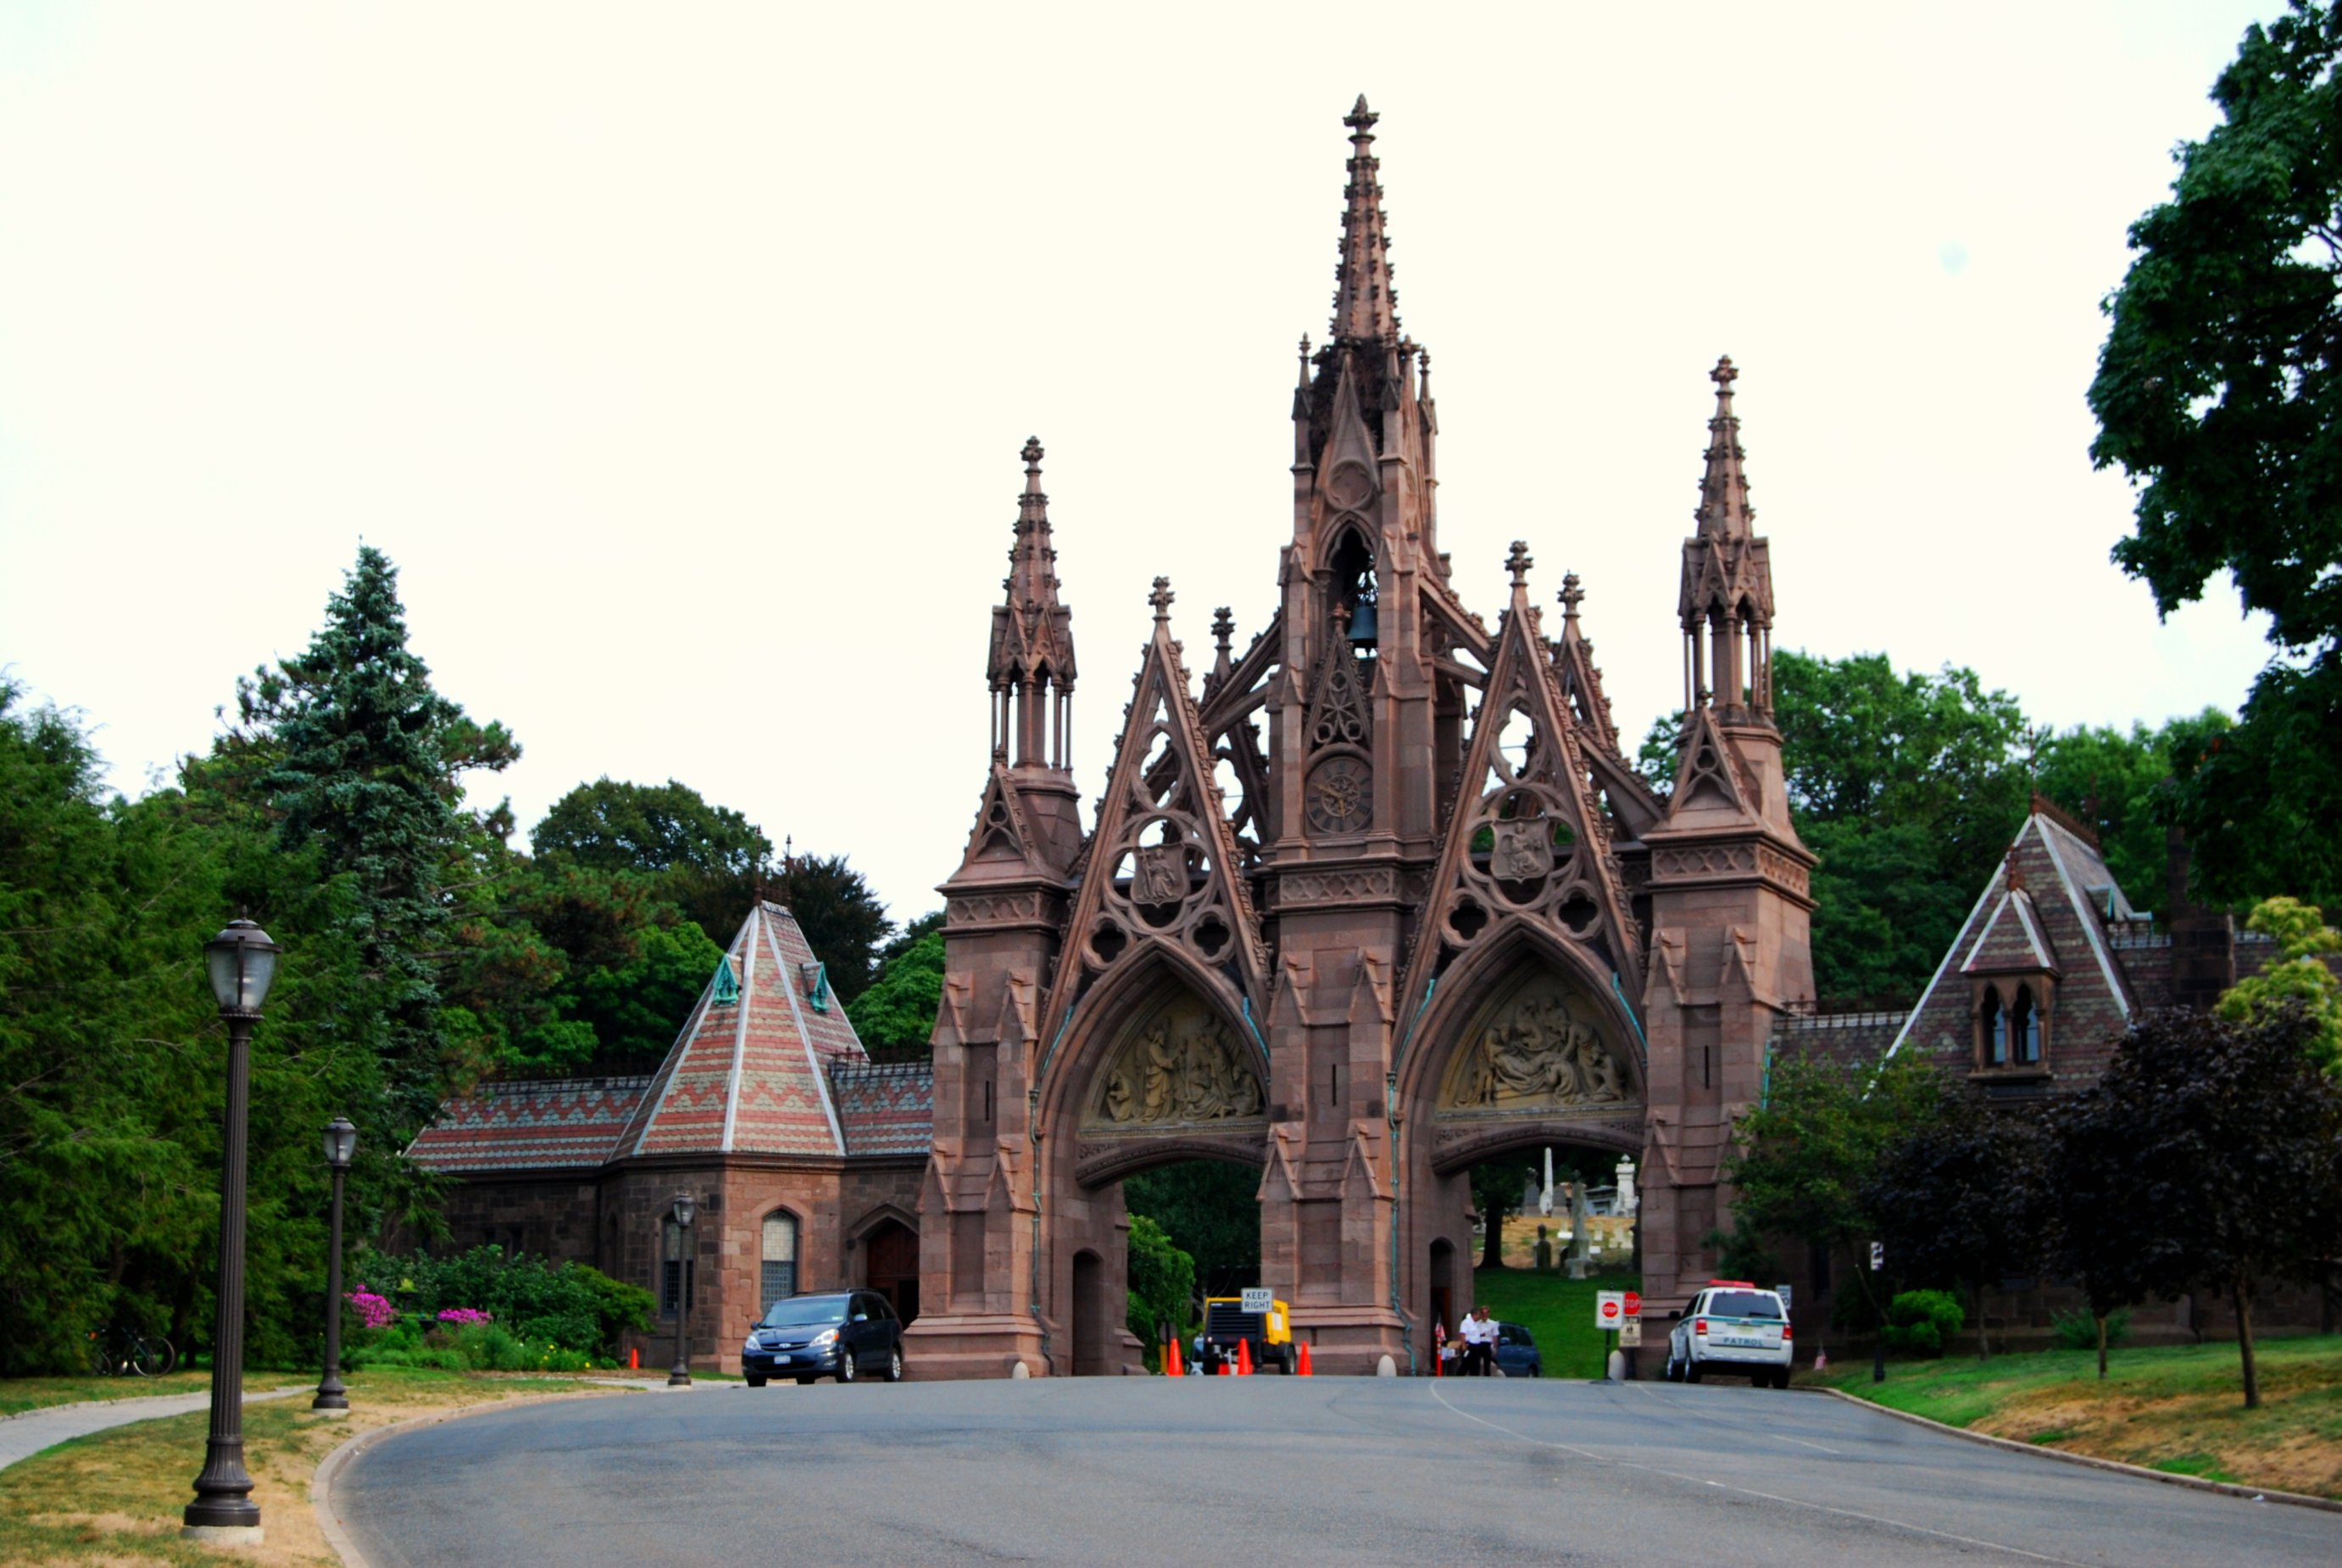 https://upload.wikimedia.org/wikipedia/commons/8/88/Main_Gate_to_Green-Wood_Cemetery.jpg